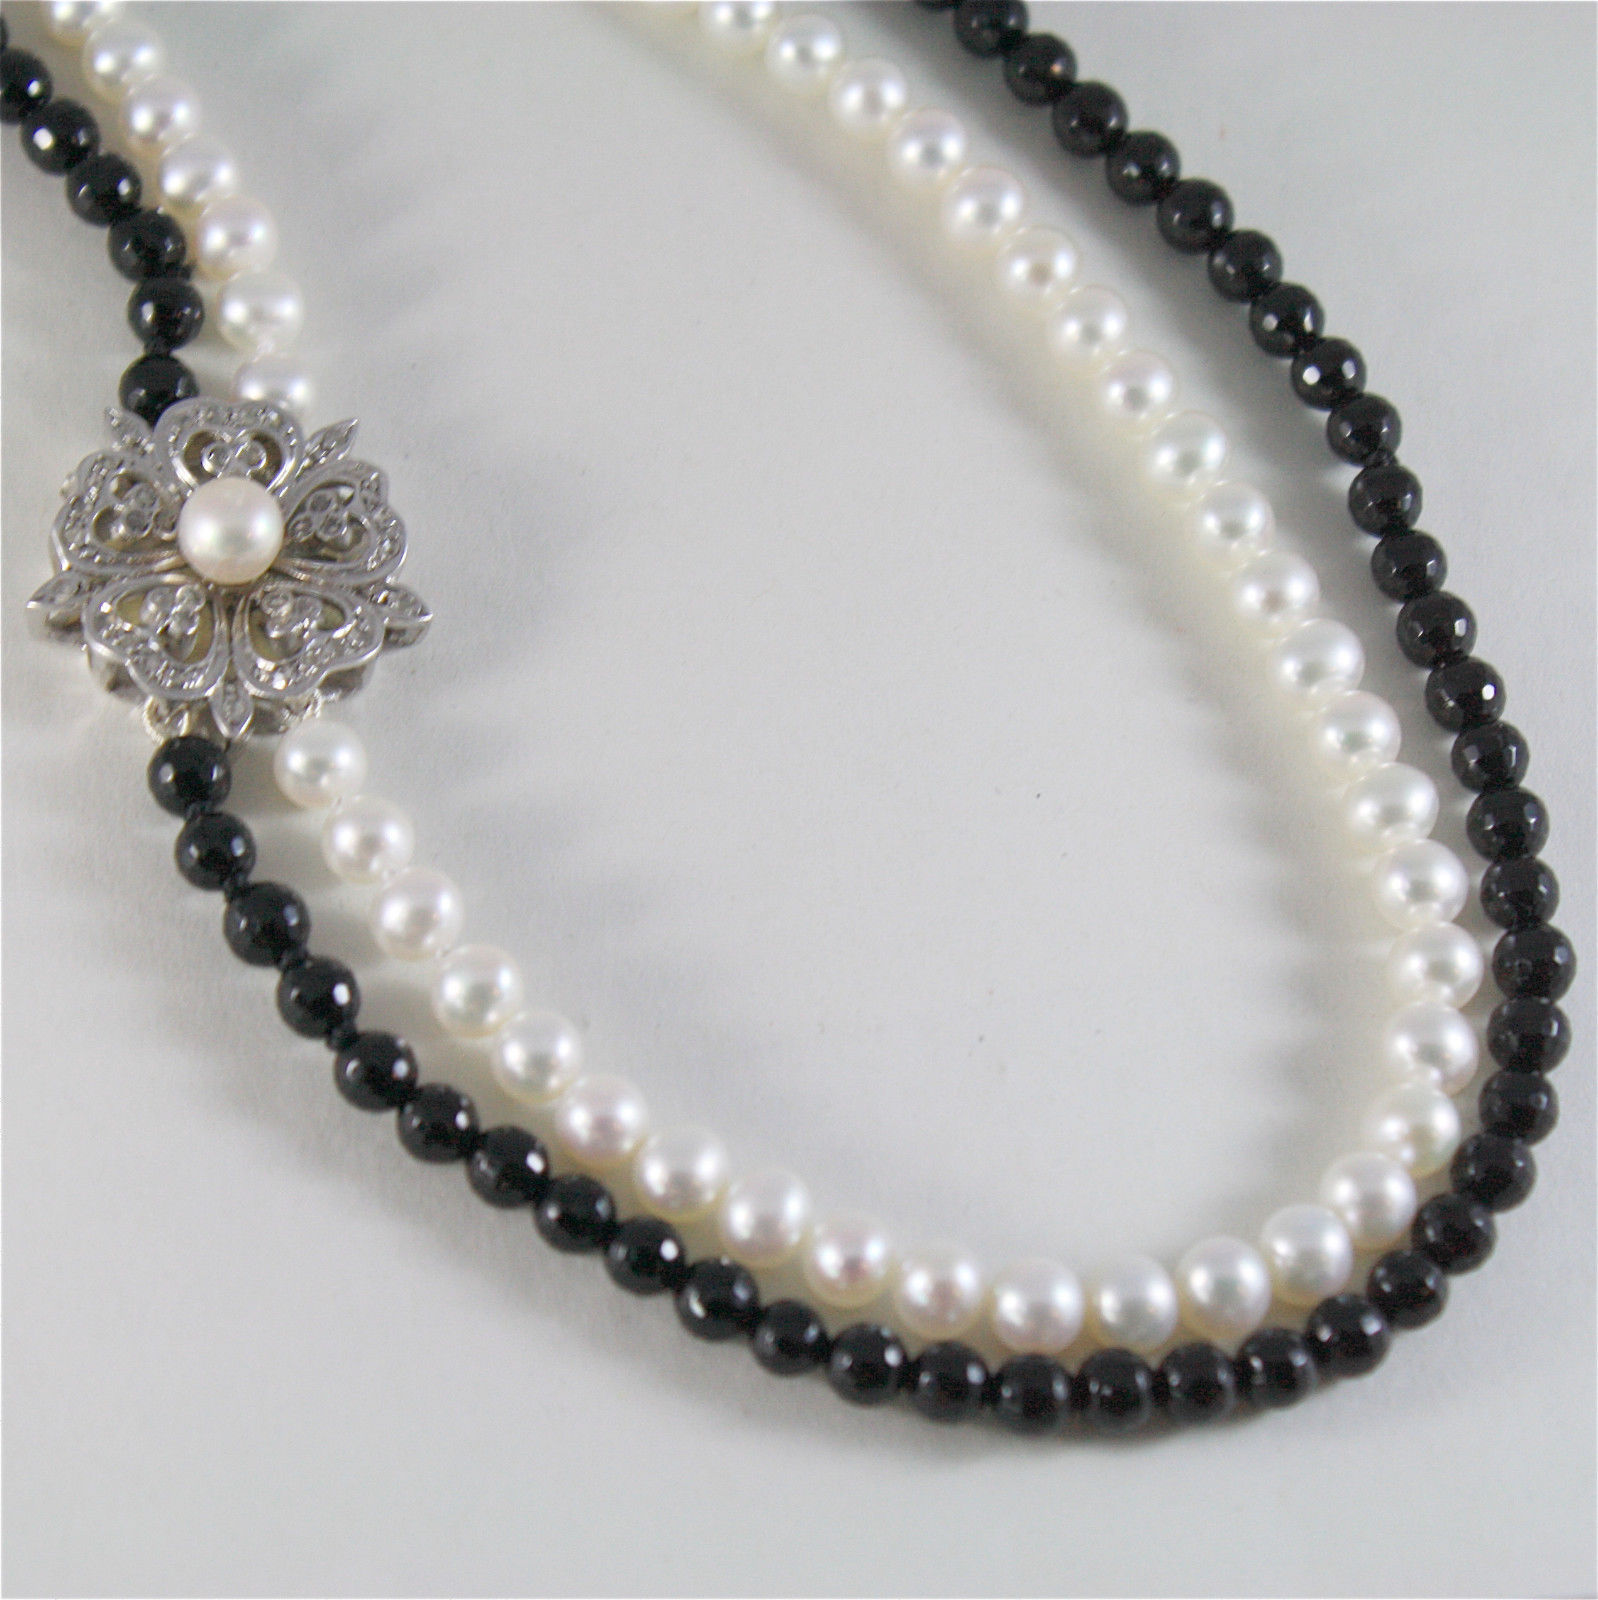 SOLID 18K WHITE GOLD NECKLACE WITH ROUND PEARLS, ONYX AND DIAMONDS MADE IN ITALY